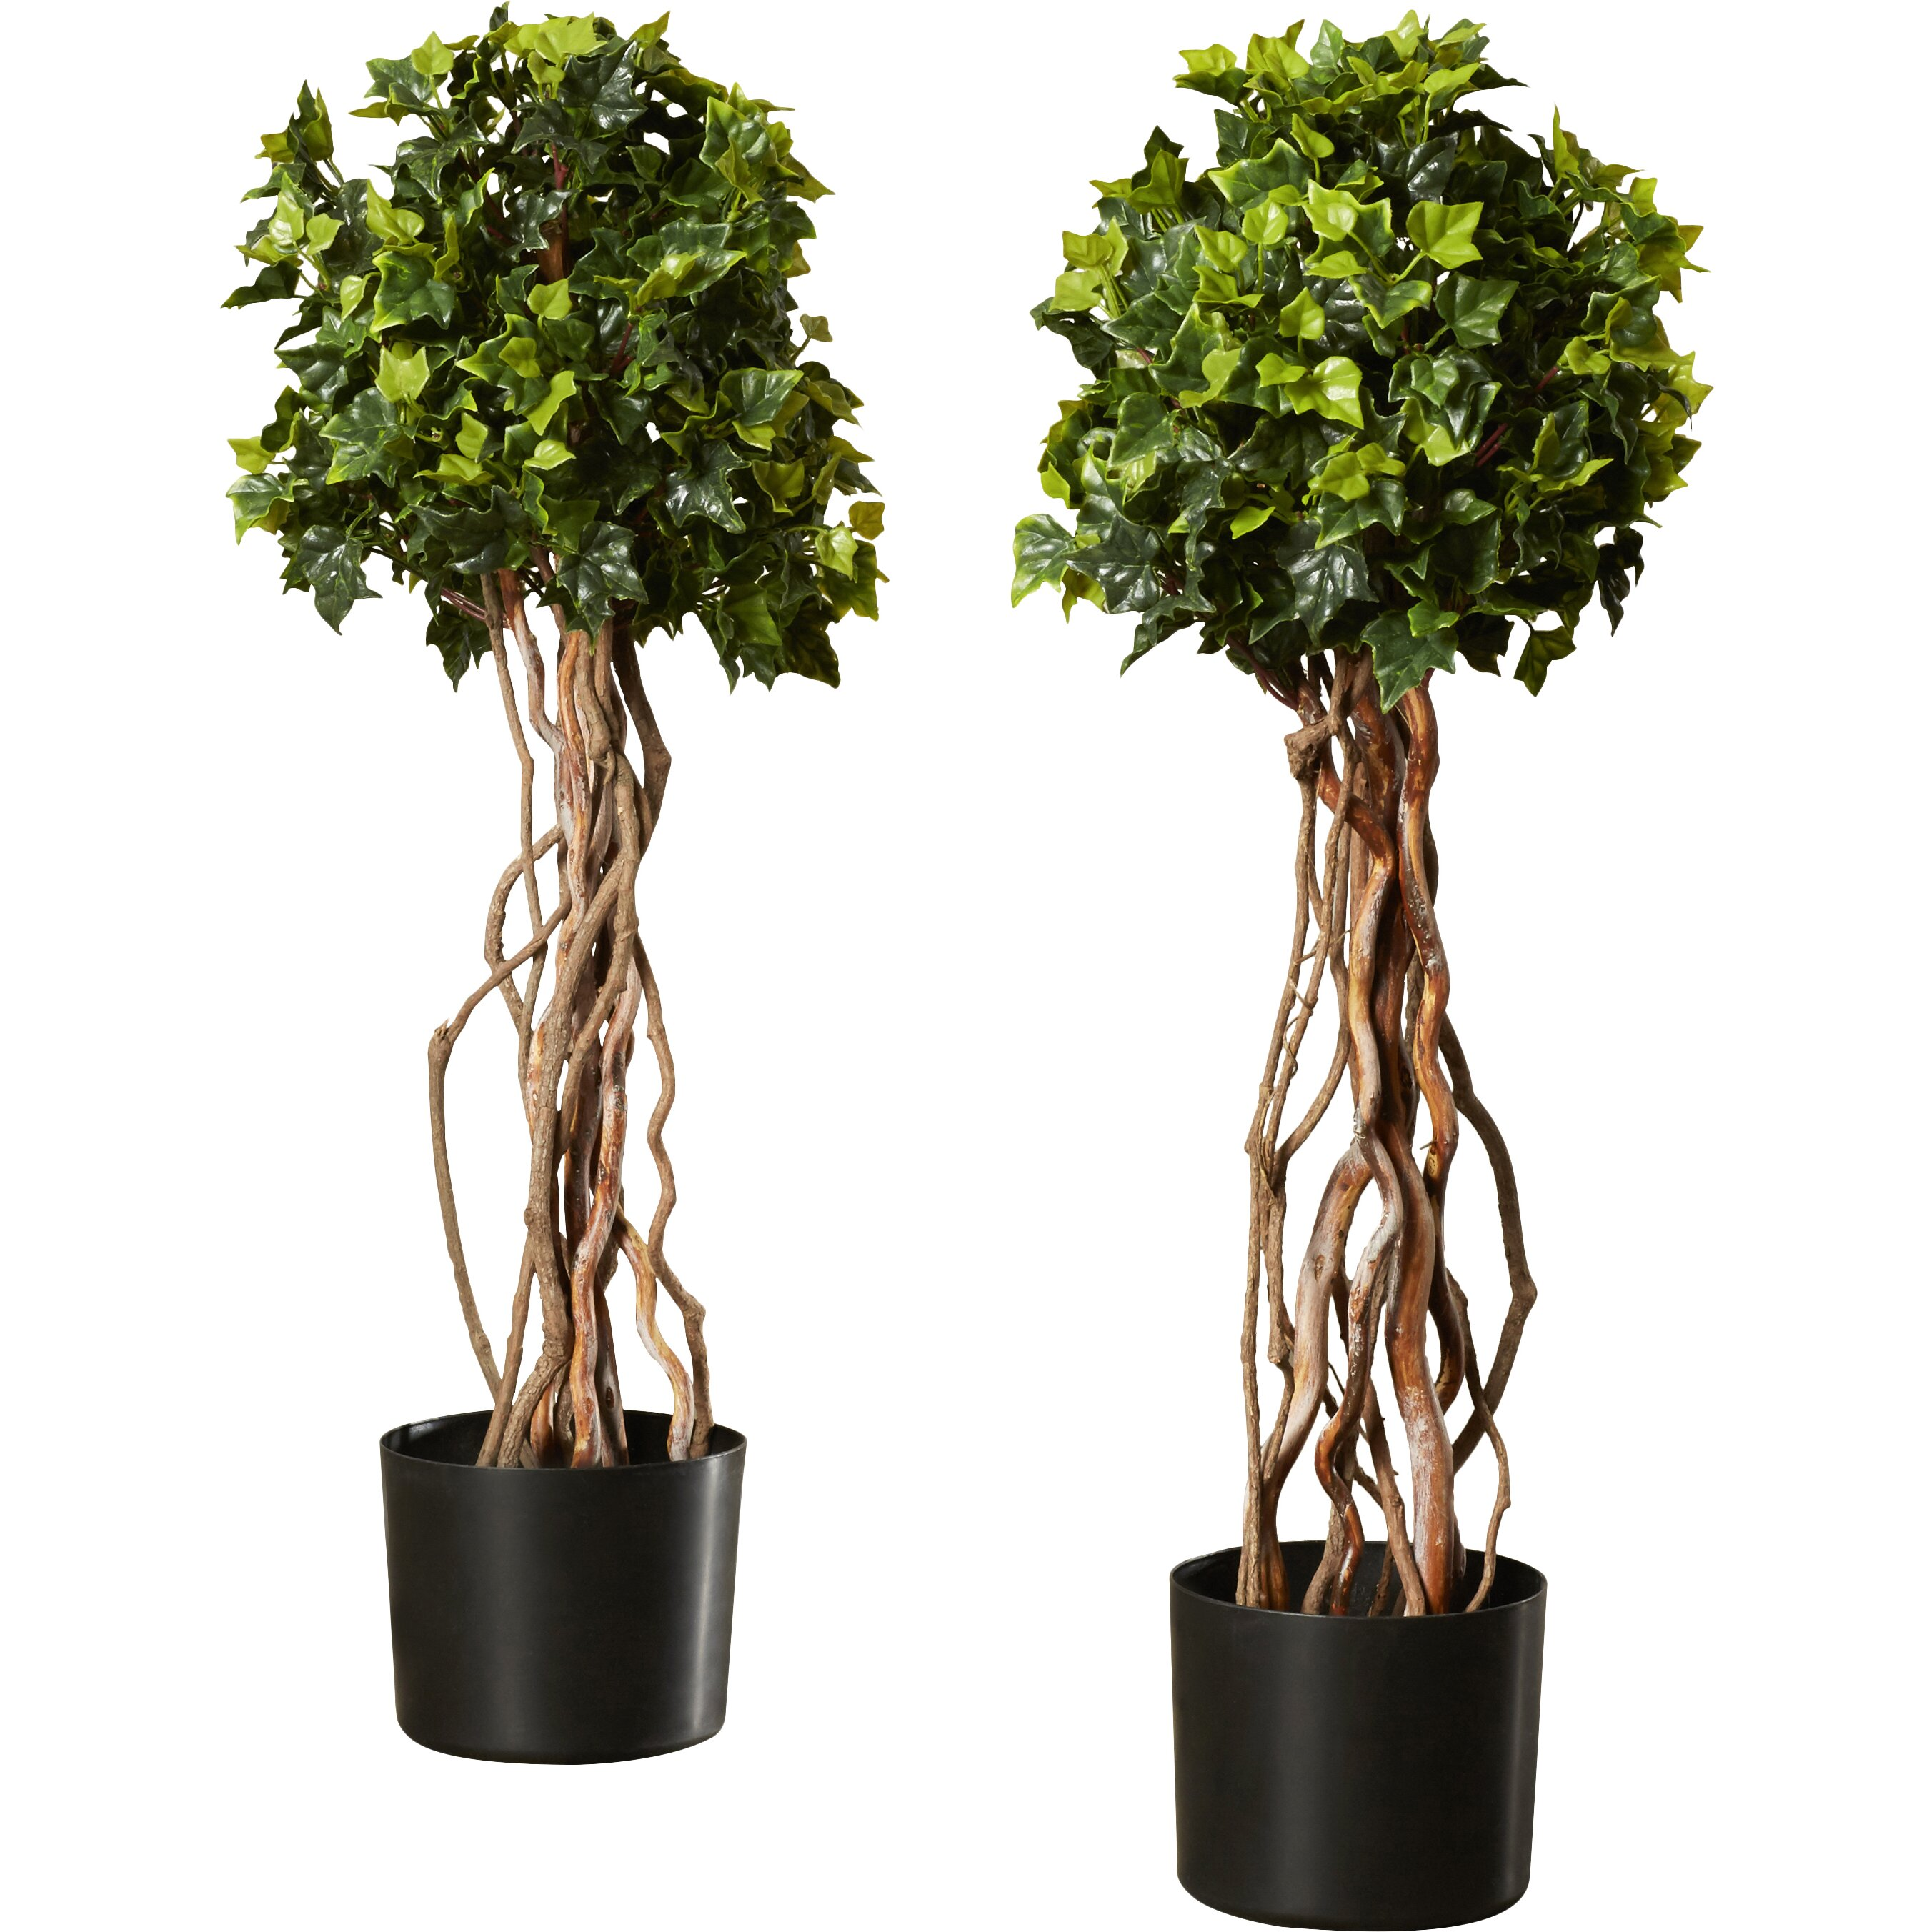 darby home co artificial english ivy topiary tree in pot. Black Bedroom Furniture Sets. Home Design Ideas